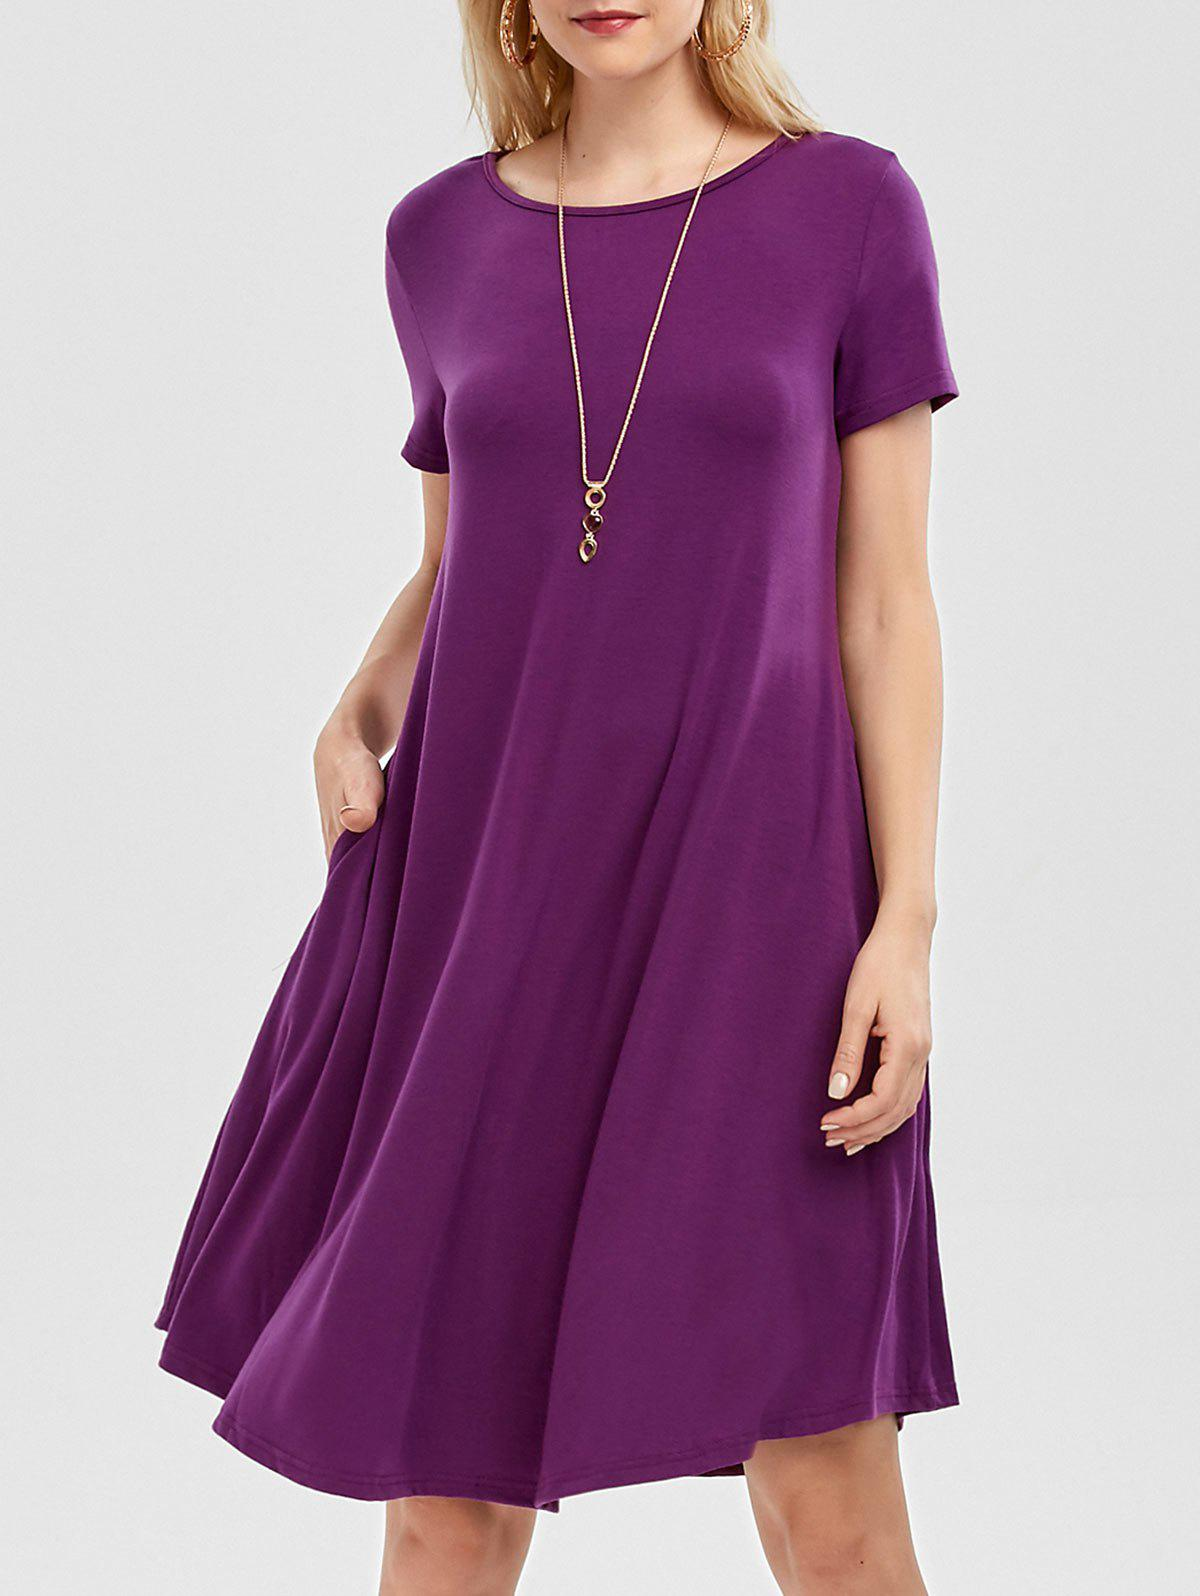 Short Sleeve A Line Dress with Pockets plus size collared a line dress with pockets